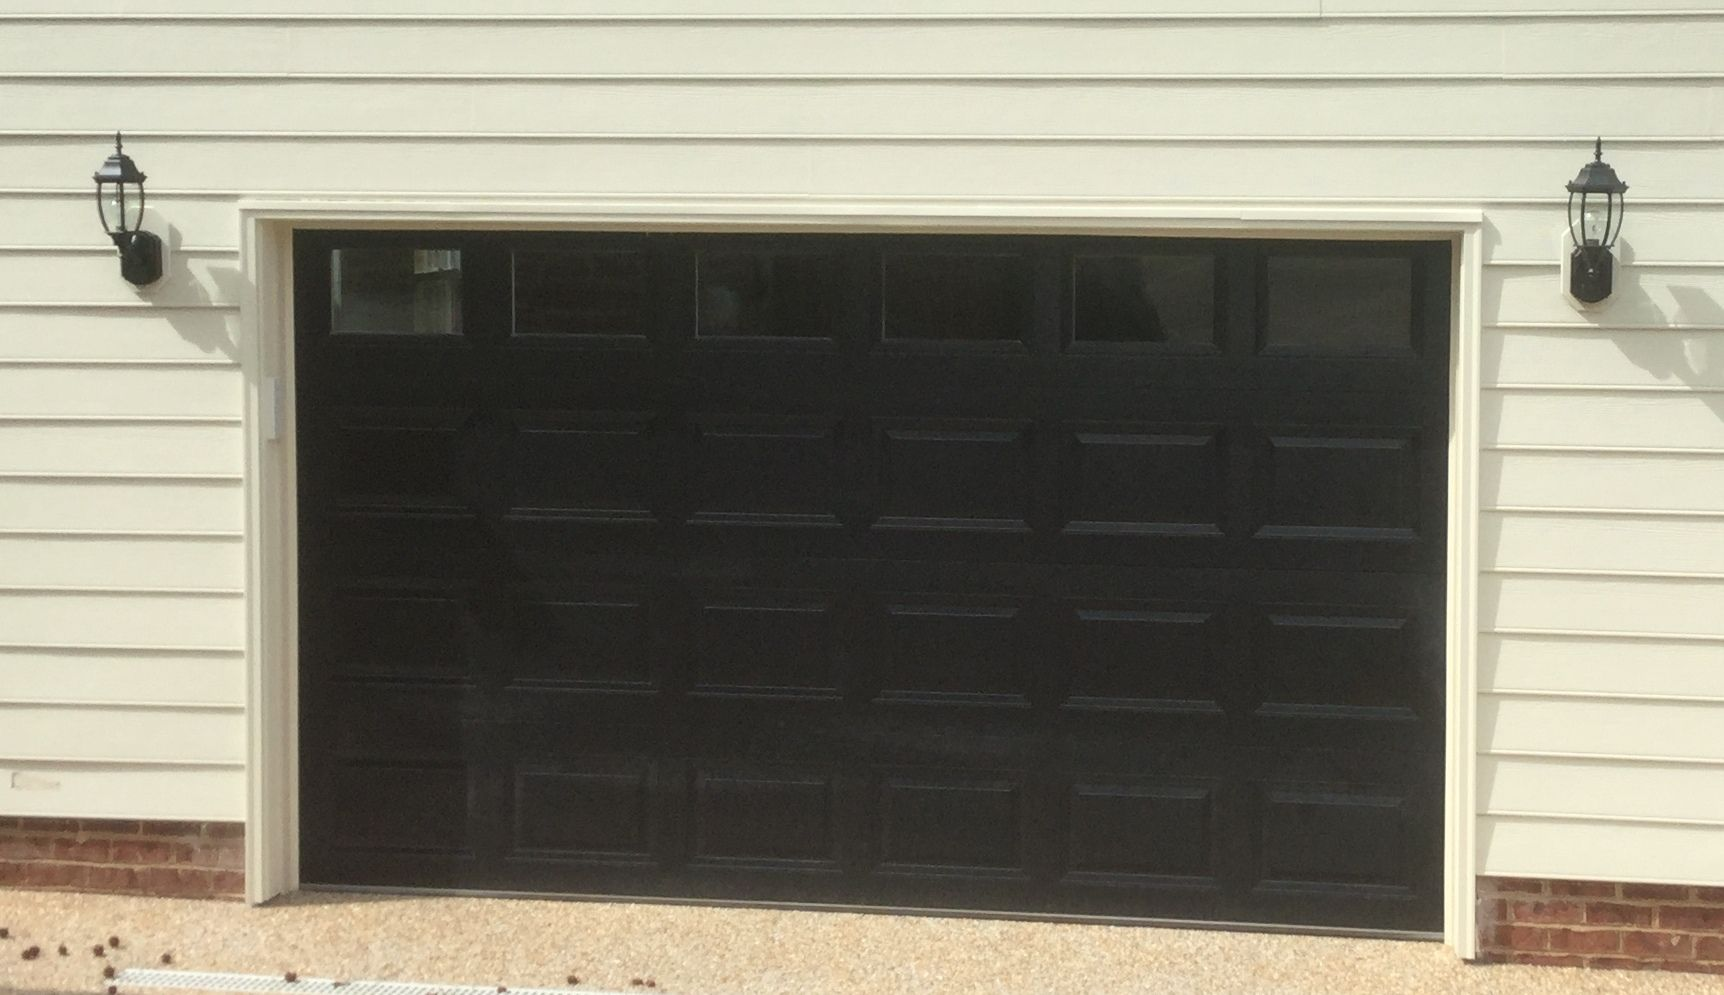 12x7 Model 2216 Raised Short Panel Steel Garage Door Black With Top Clear Glass Installed By The Richmond Sto Home Building Design Garage Doors Building Design